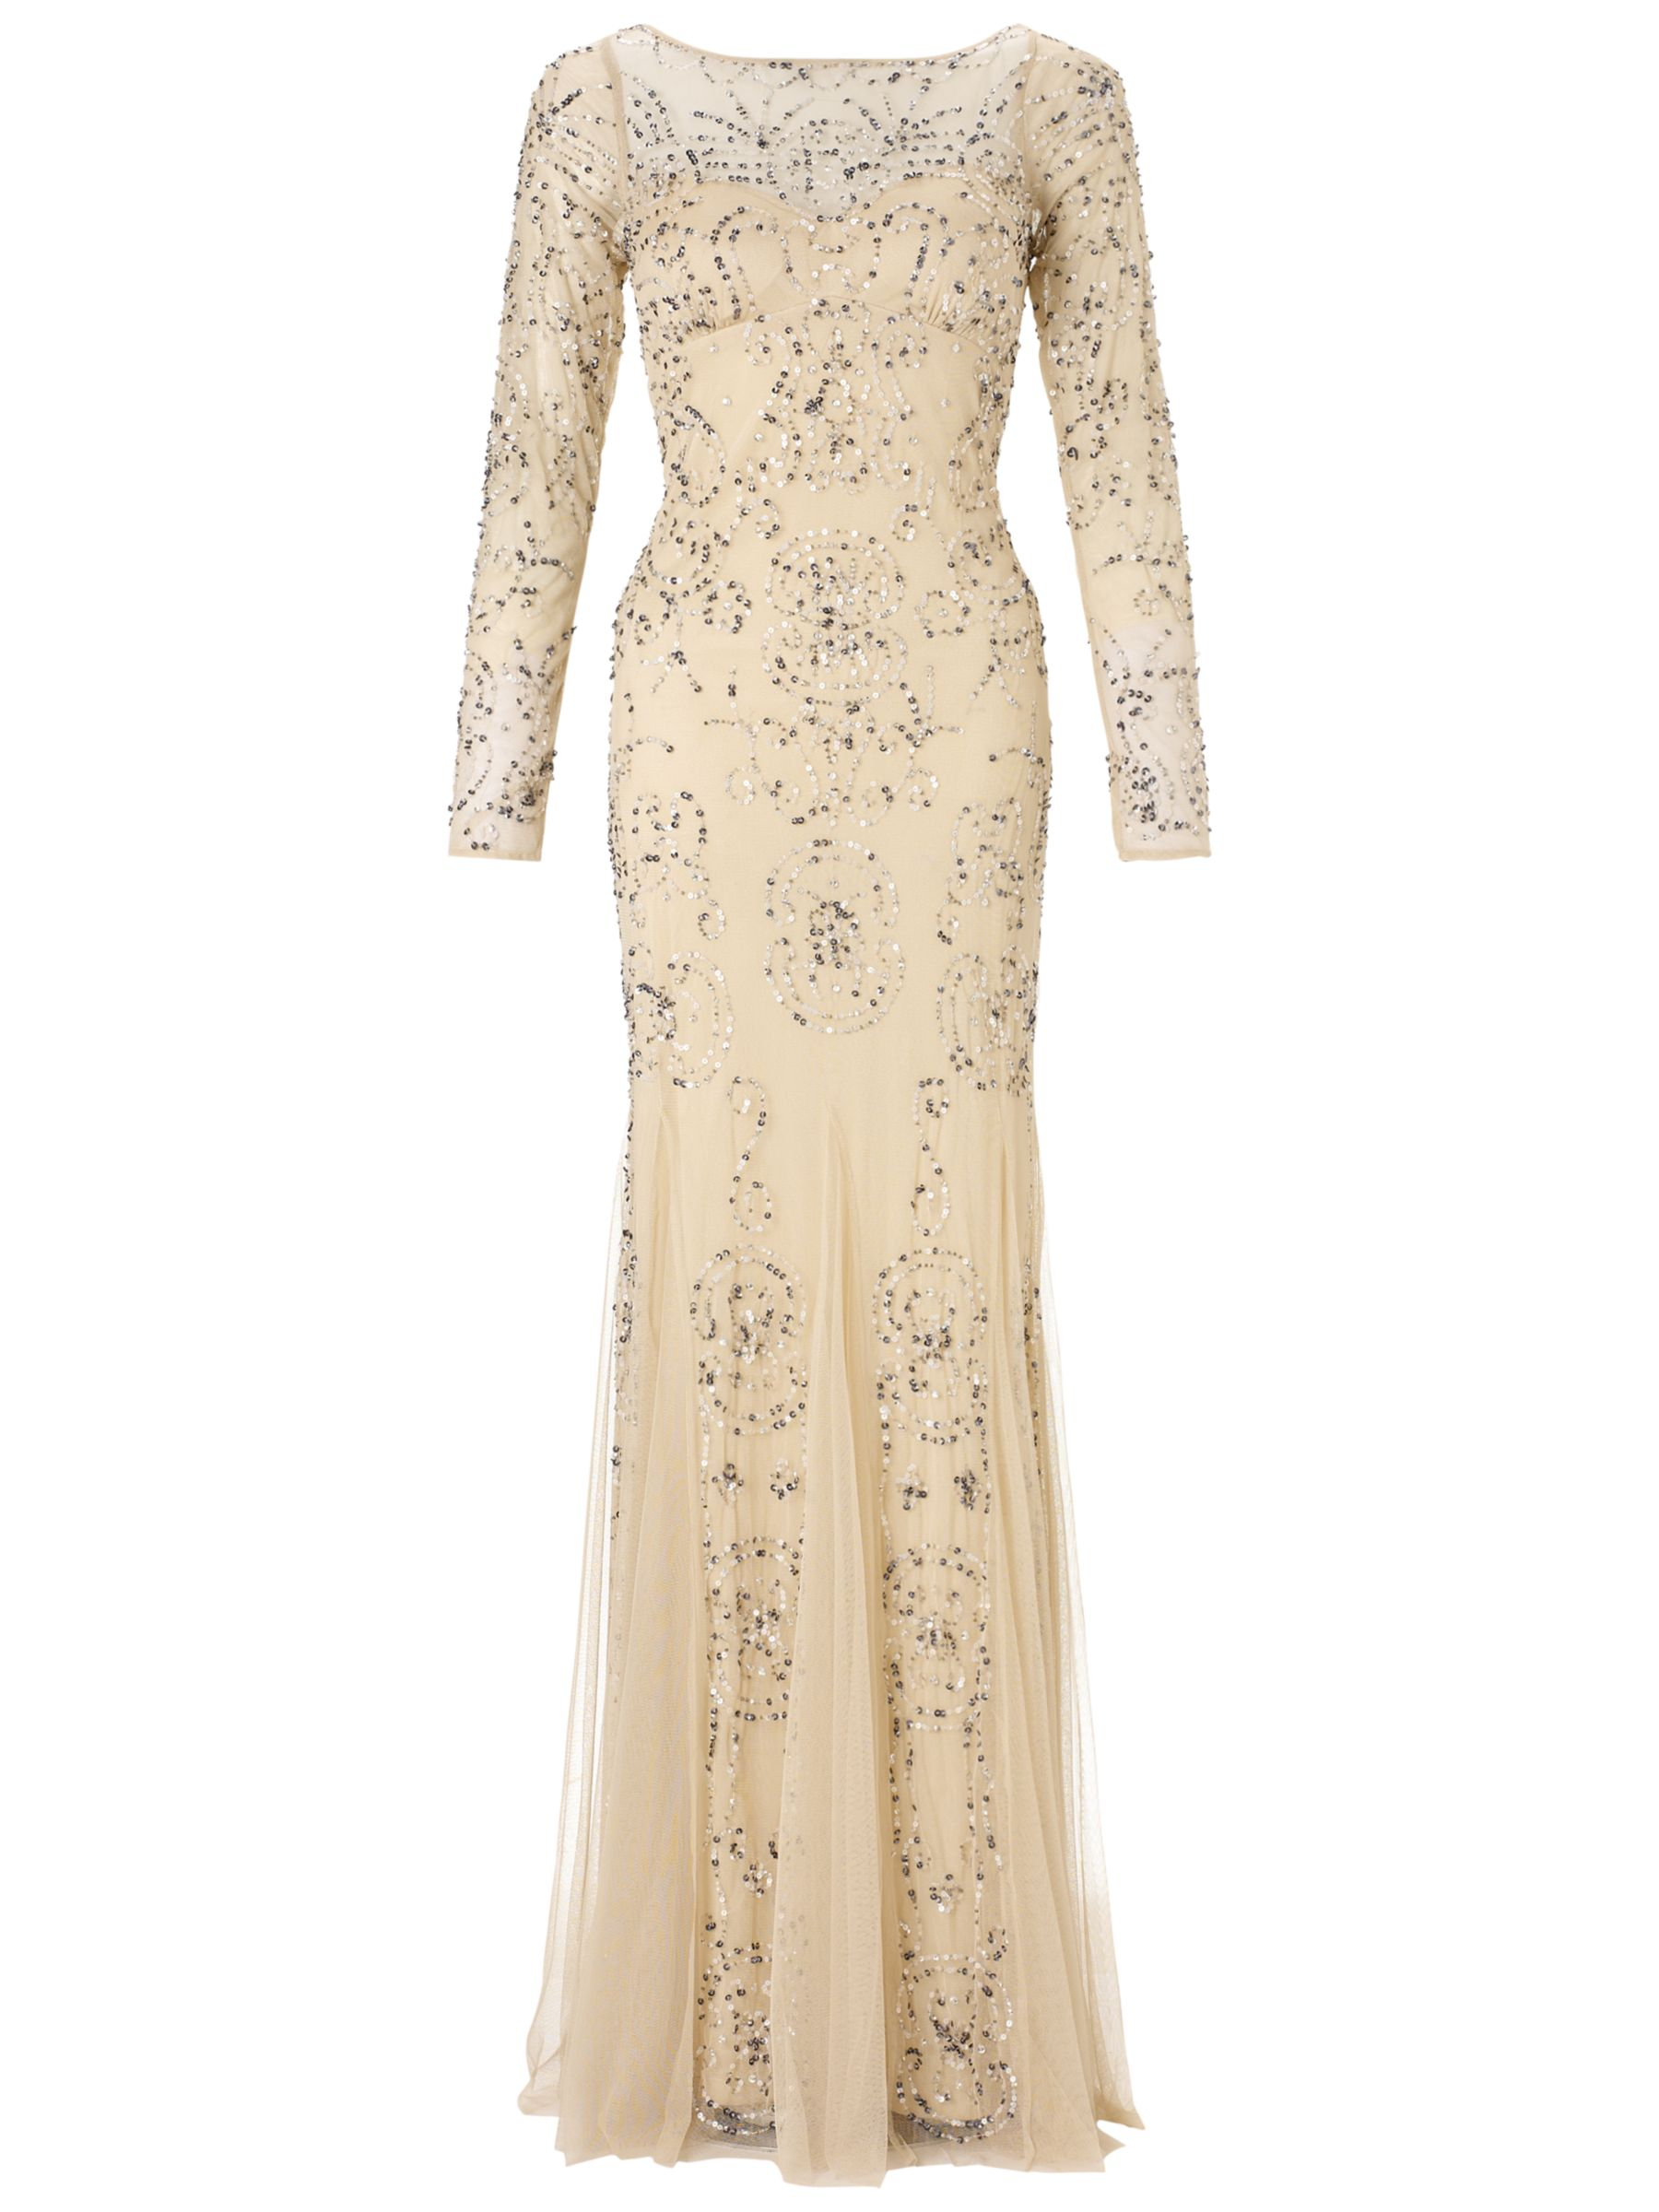 Adrianna Papell Long Sleeve Beaded Dress, Cream